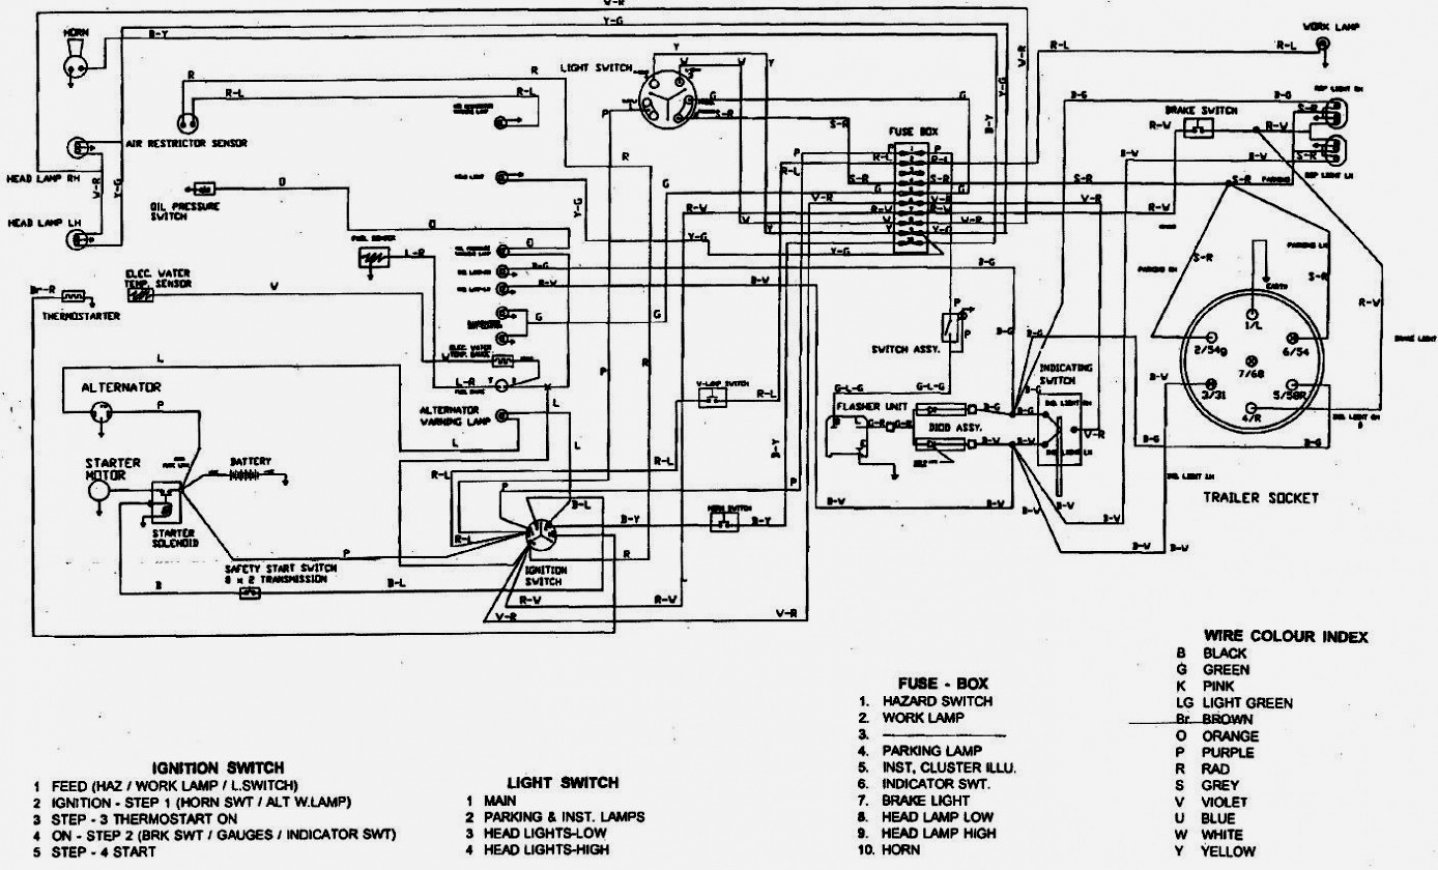 diagram] datsun 620 wiring diagram for distributor full version hd quality  for distributor - 1gelectrialwiring.thebluecore.it  1gelectrialwiring.thebluecore.it